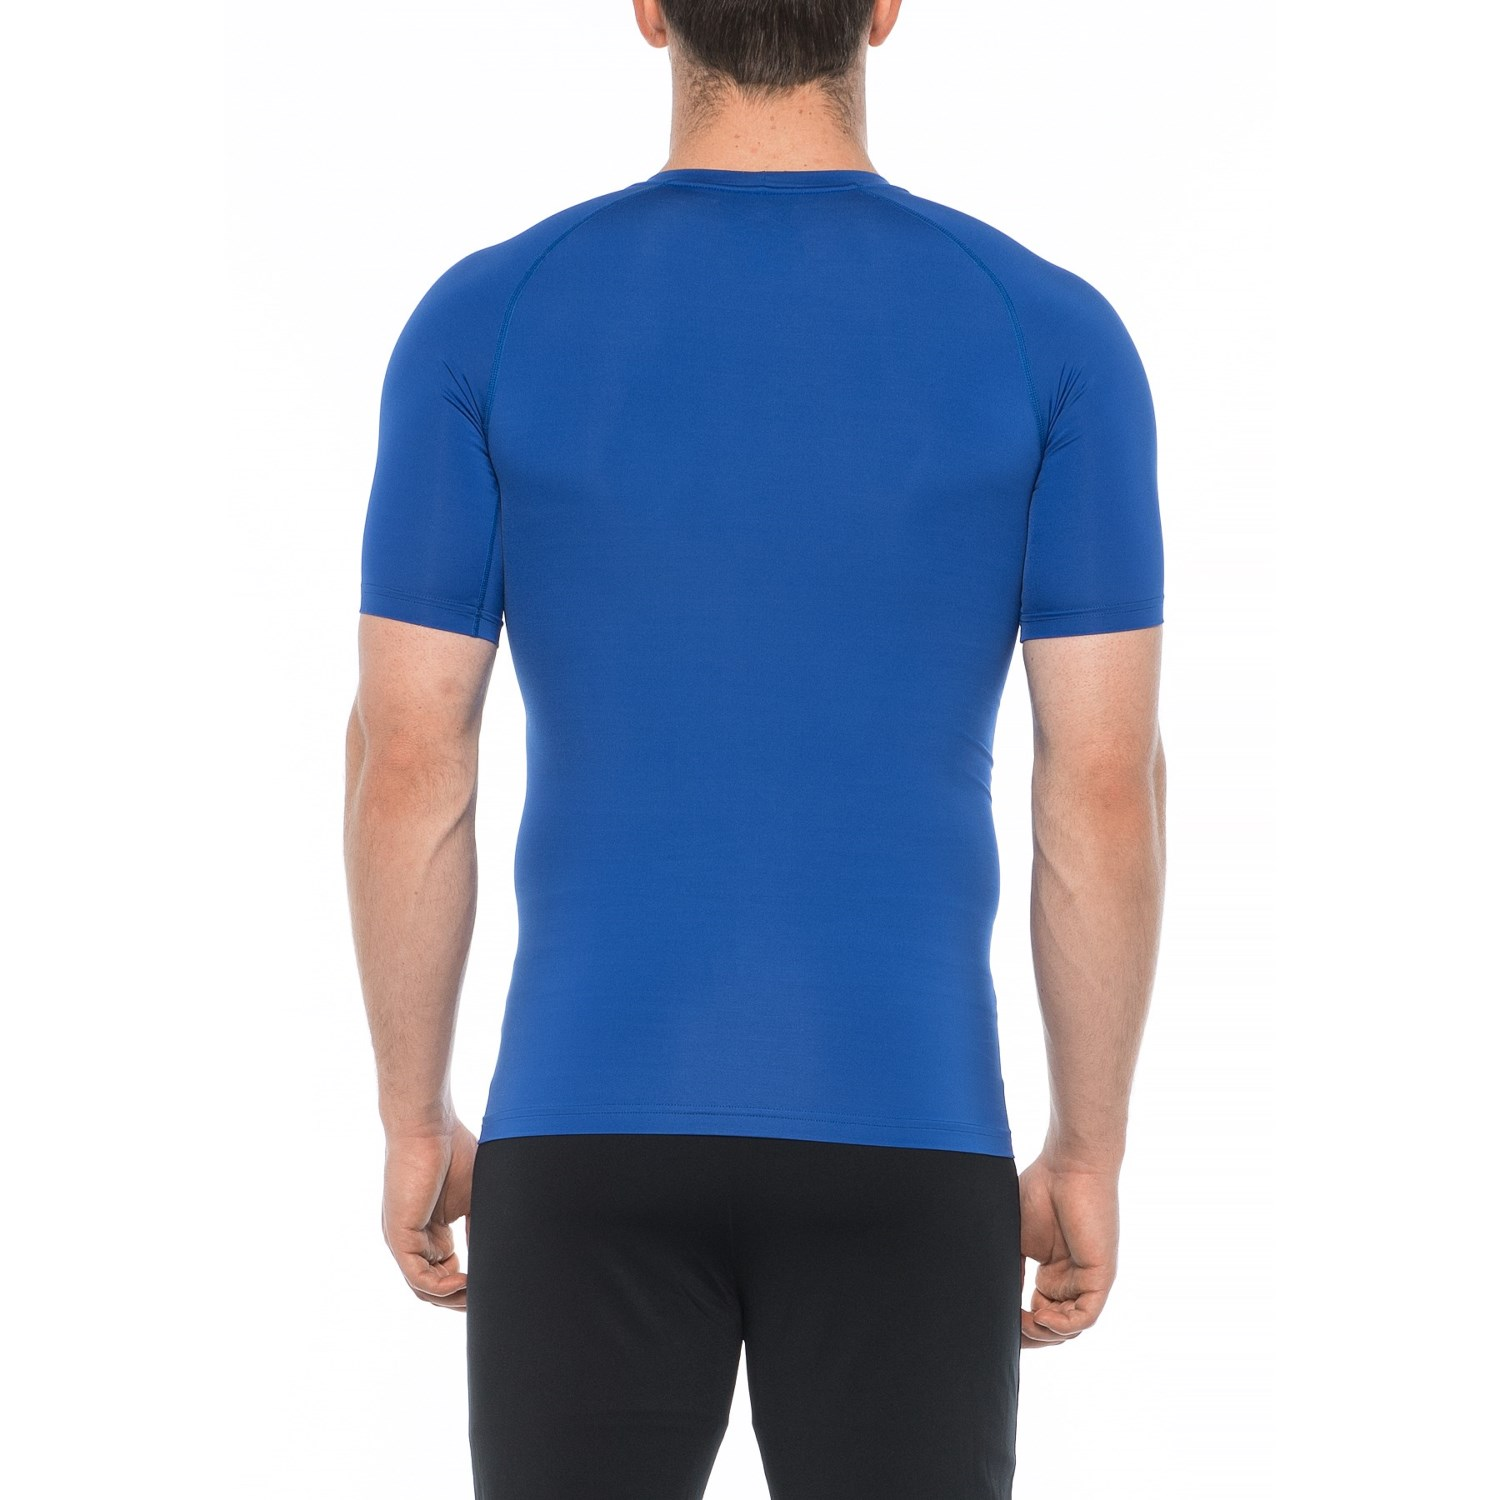 58d9498aea 2XU LKRM Game Day Compression Shirt - Short Sleeve (For Men)